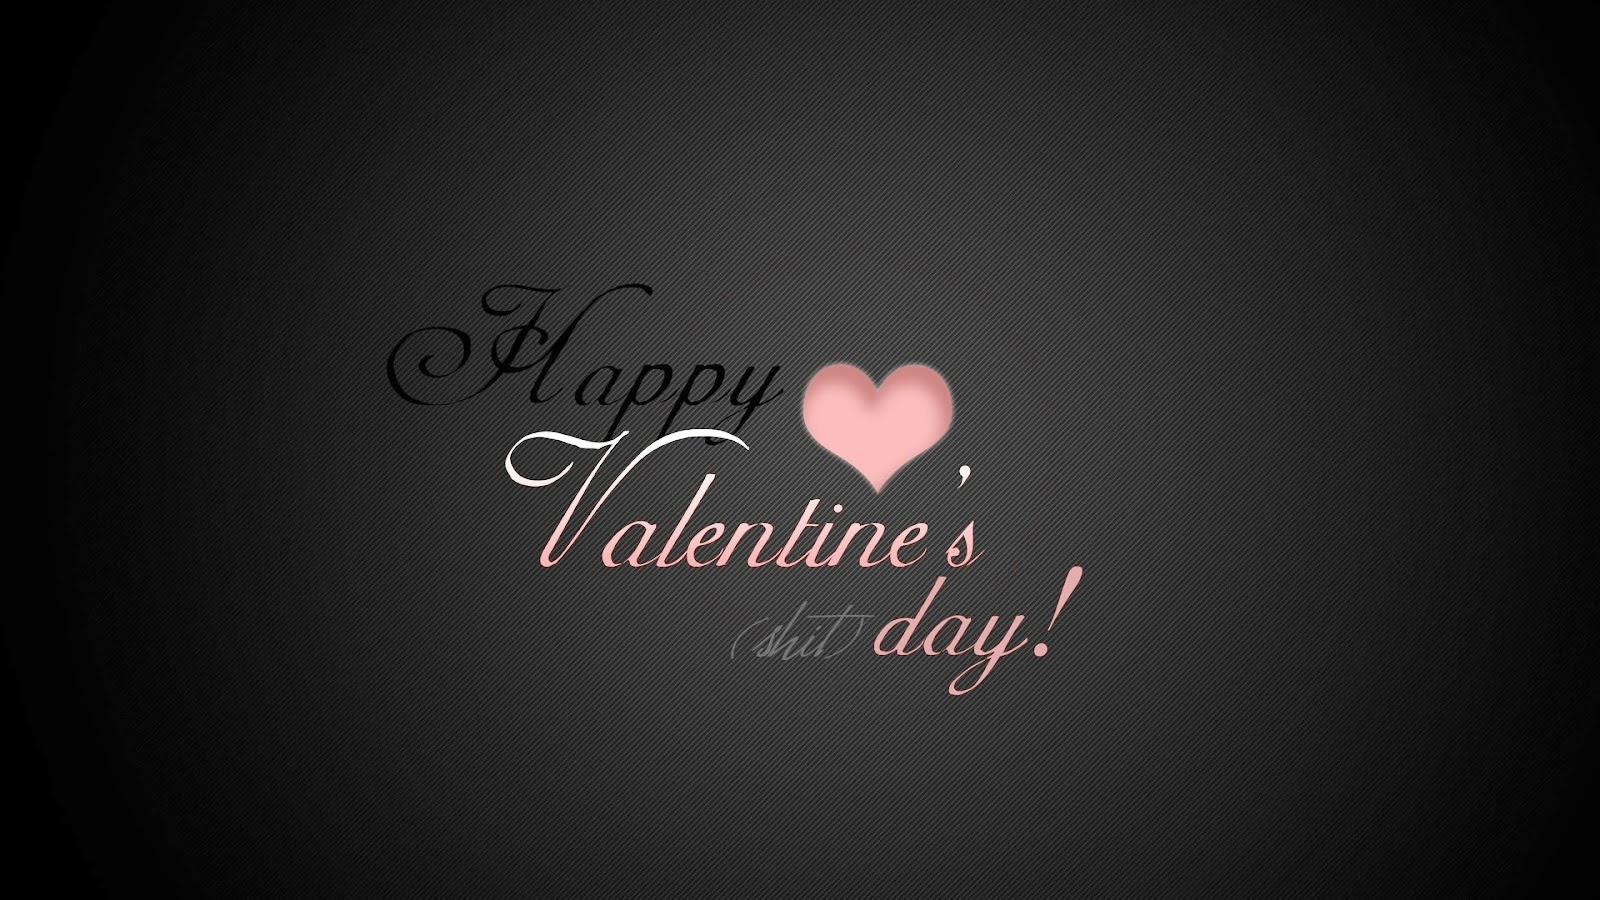 Happy Valentines Day Messages Sms Wishes Quotes For Friends Colleagues